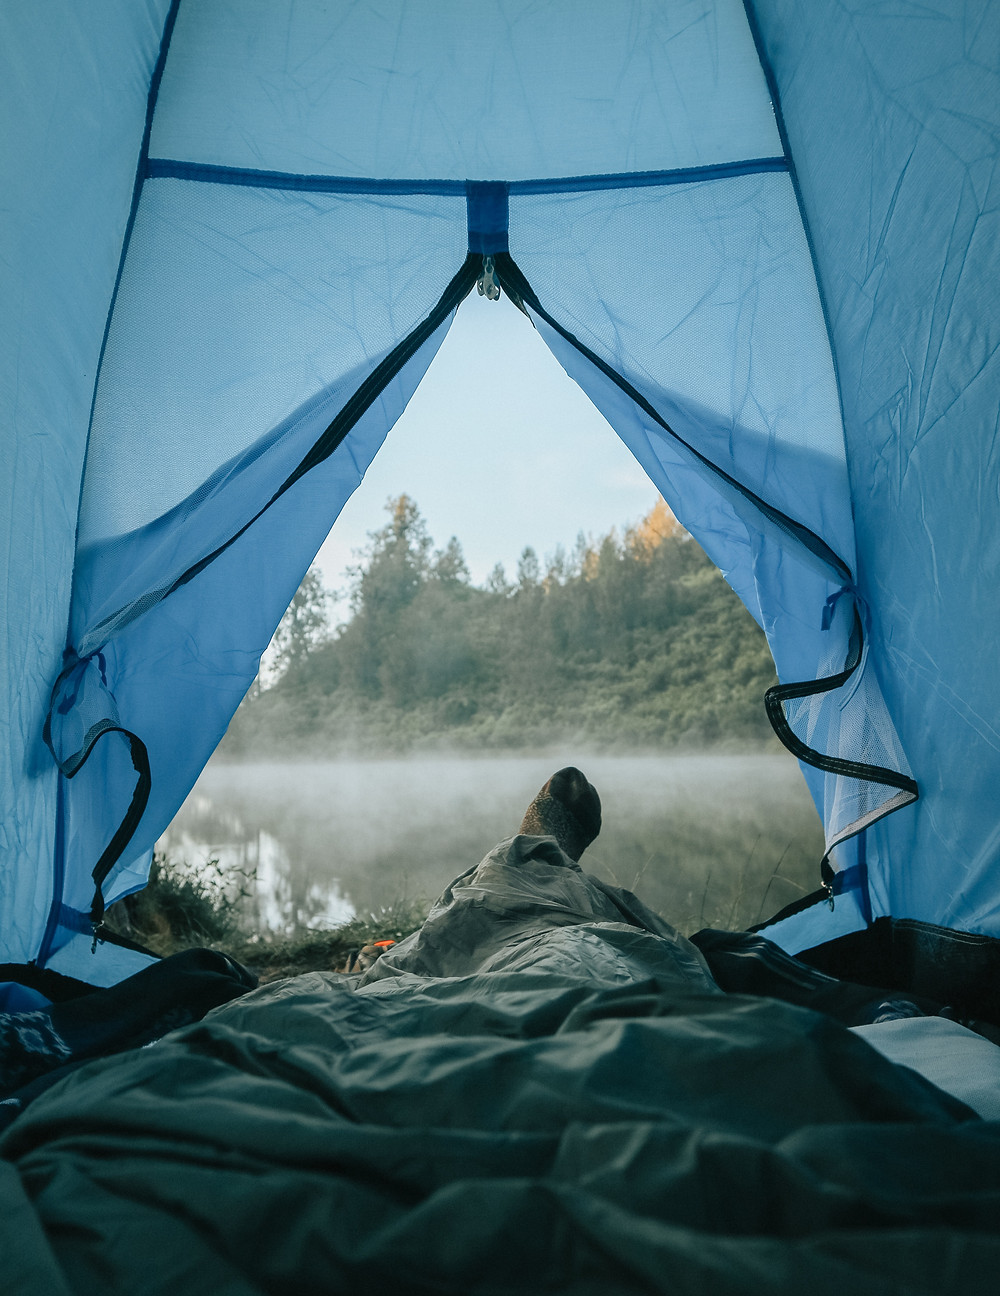 mosquito in a tent